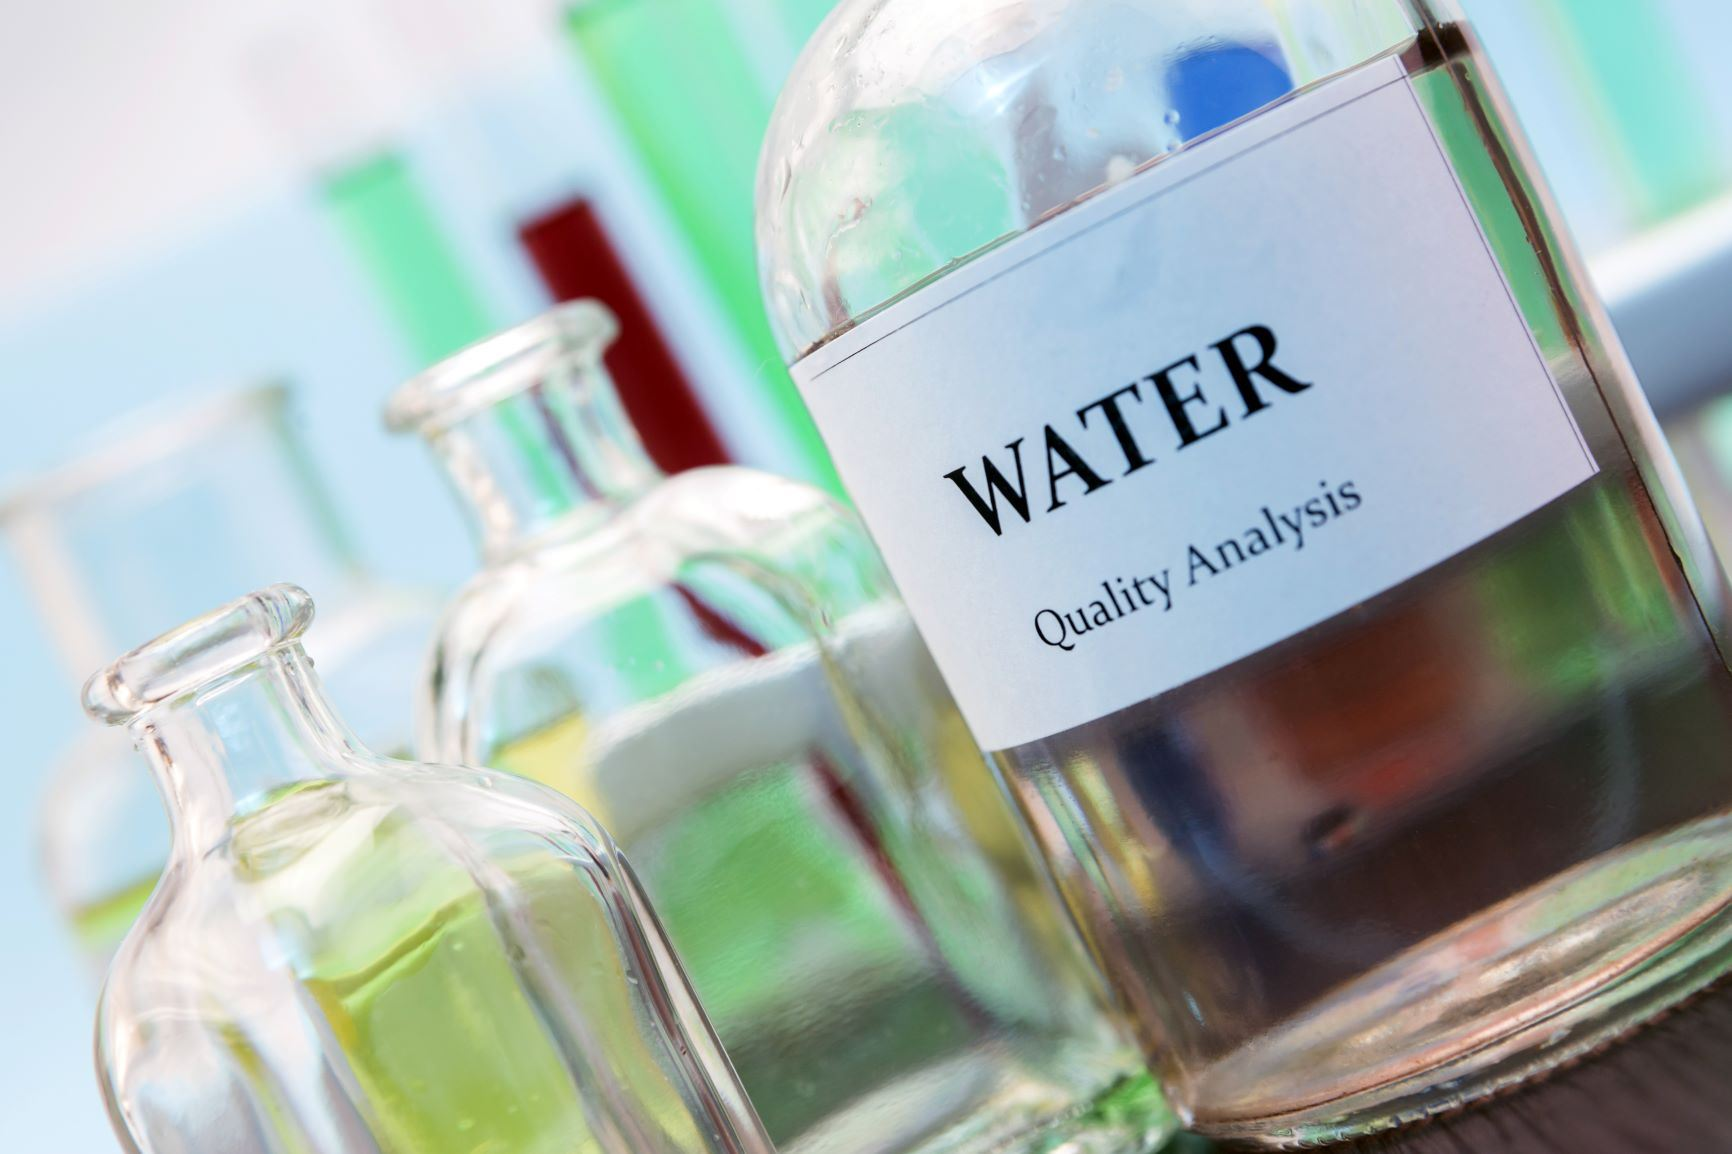 water_quality_analysis_stockphoto